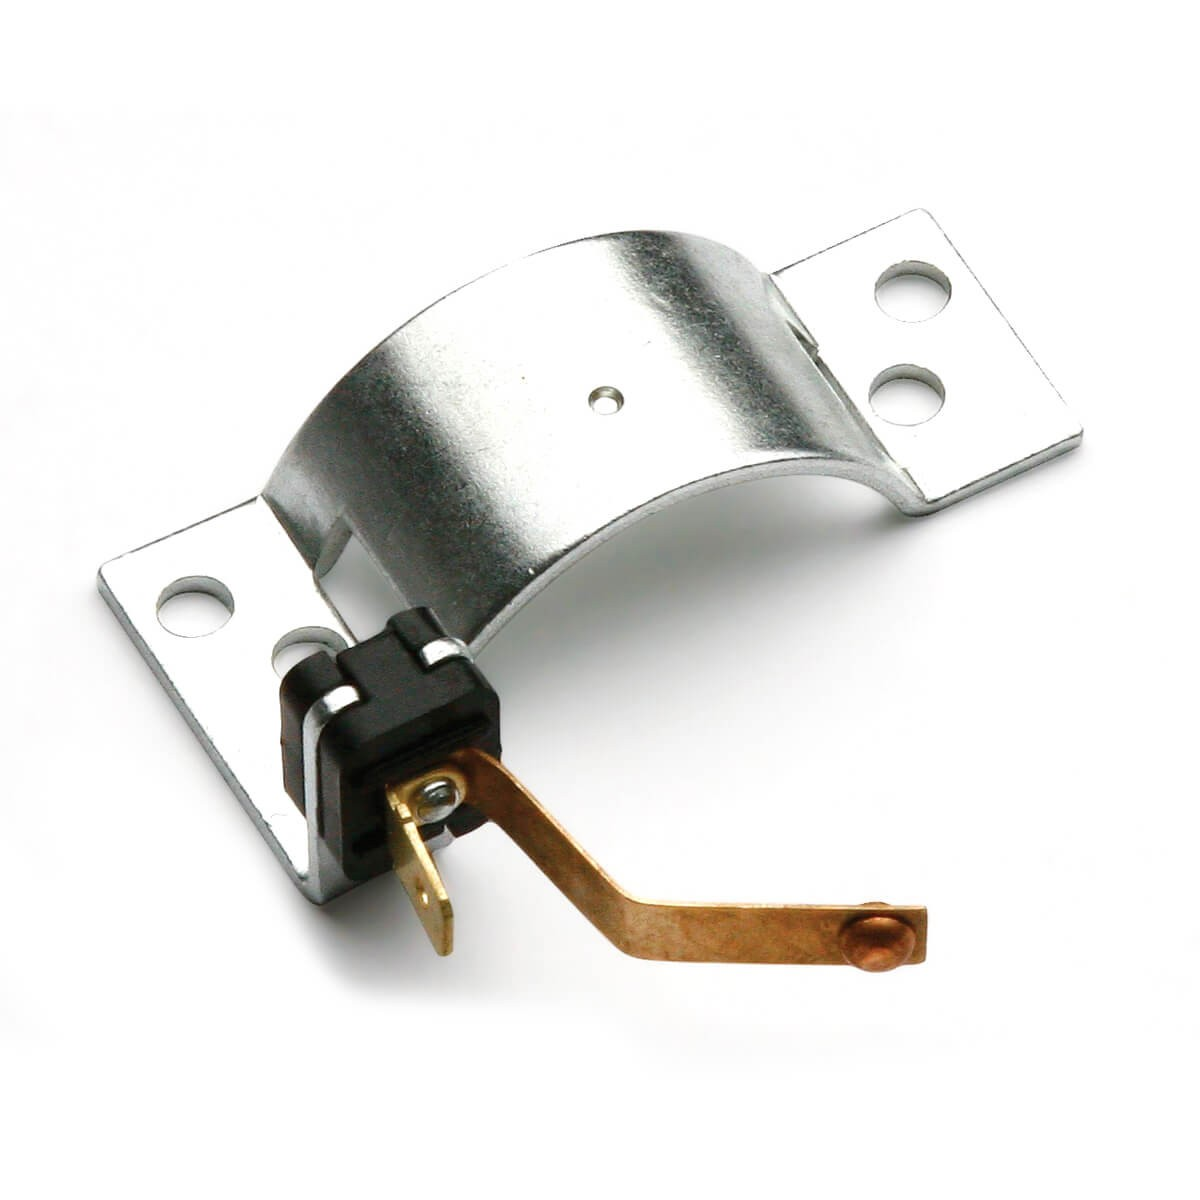 141 804 Clamp Horn Contact Moss Motors 1972 Mg Midget Wiring Diagram For Horns On